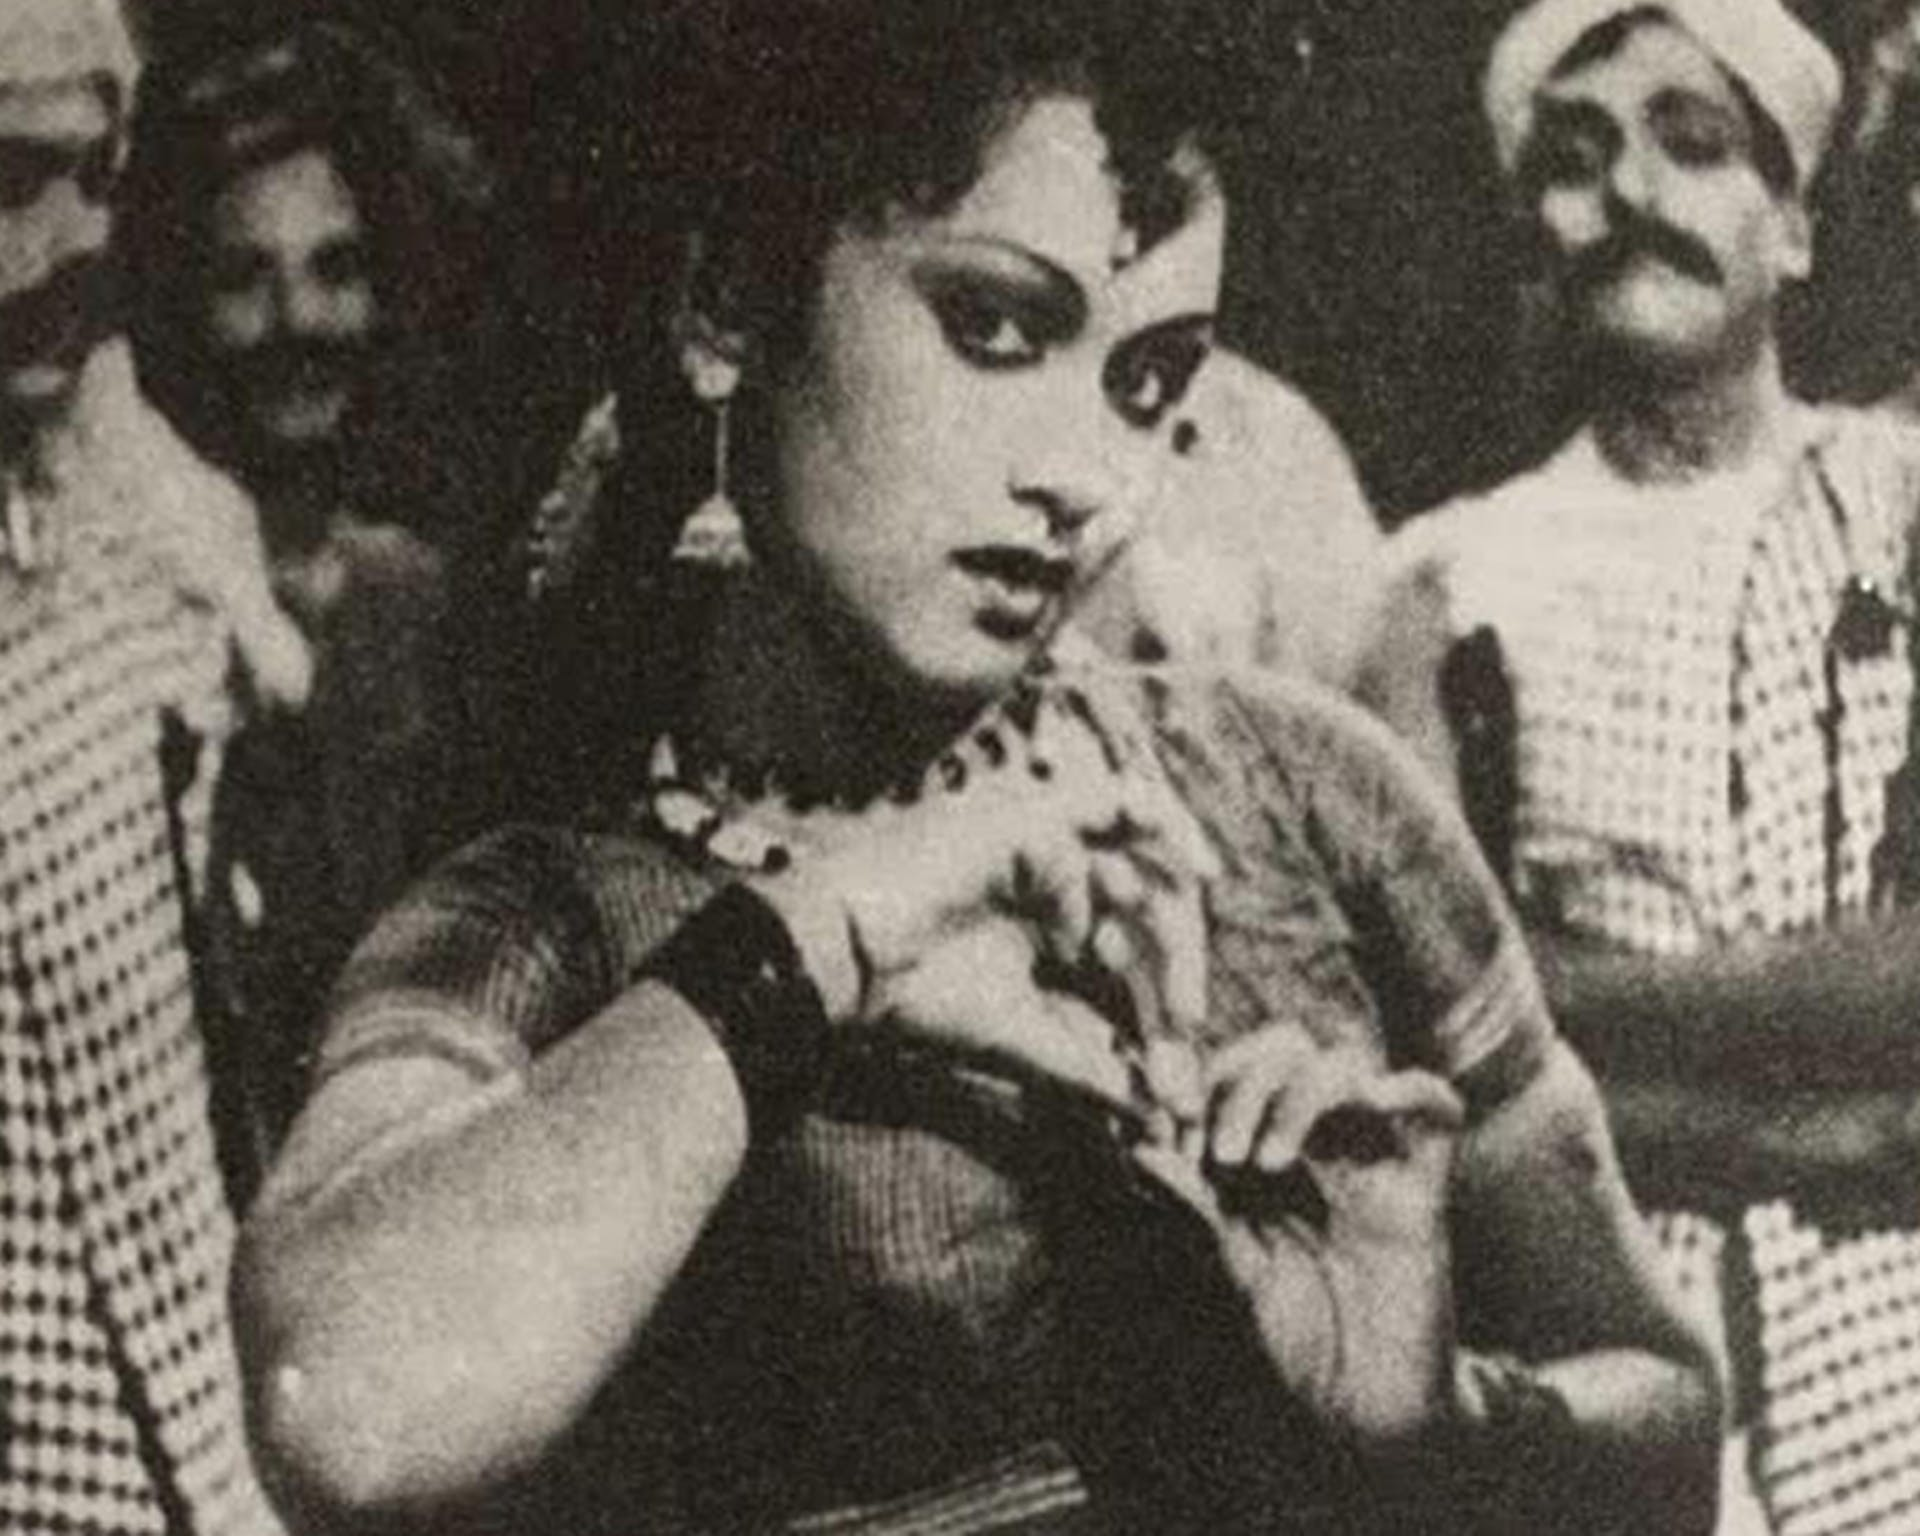 Actress Harini, originally from Udupi, was already a popular theatre actor in Madras when she starred in Jaganmohini (1951) at the age of 14. Courtesy: From K. Puttaswamy's 'Kannada Talkies'